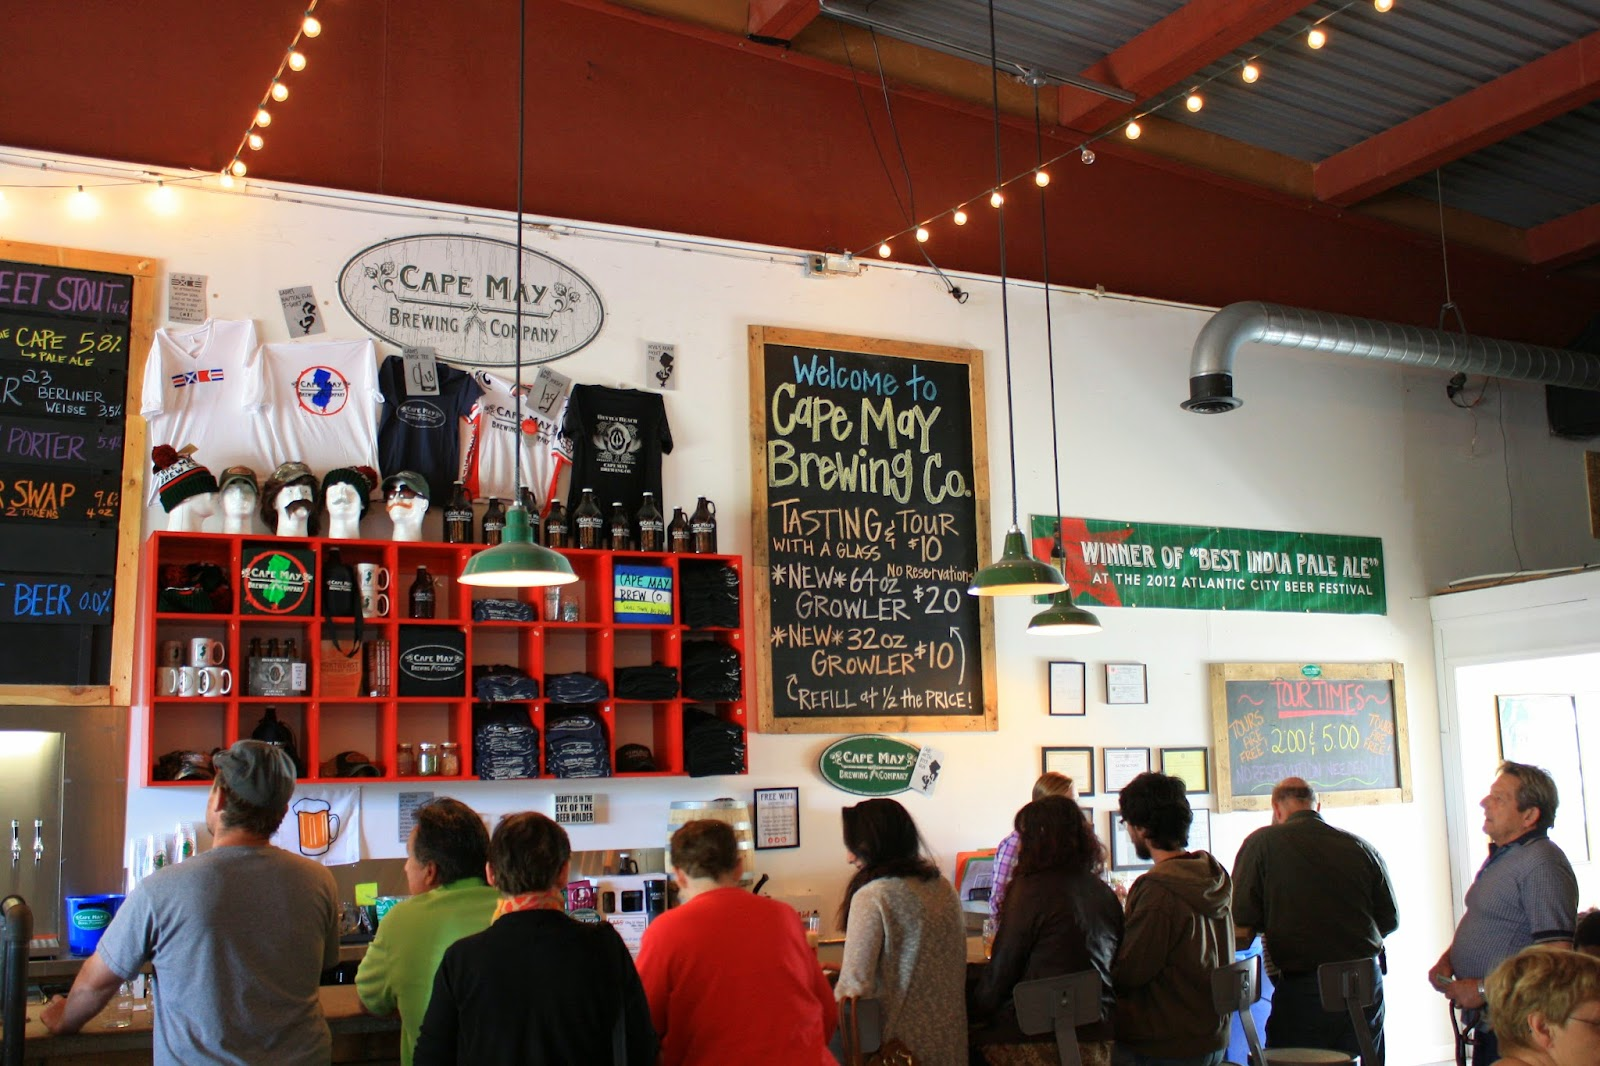 Cape May Brewing Company, Craft Beer, Microbrewery, Jersey Shore, Cape May